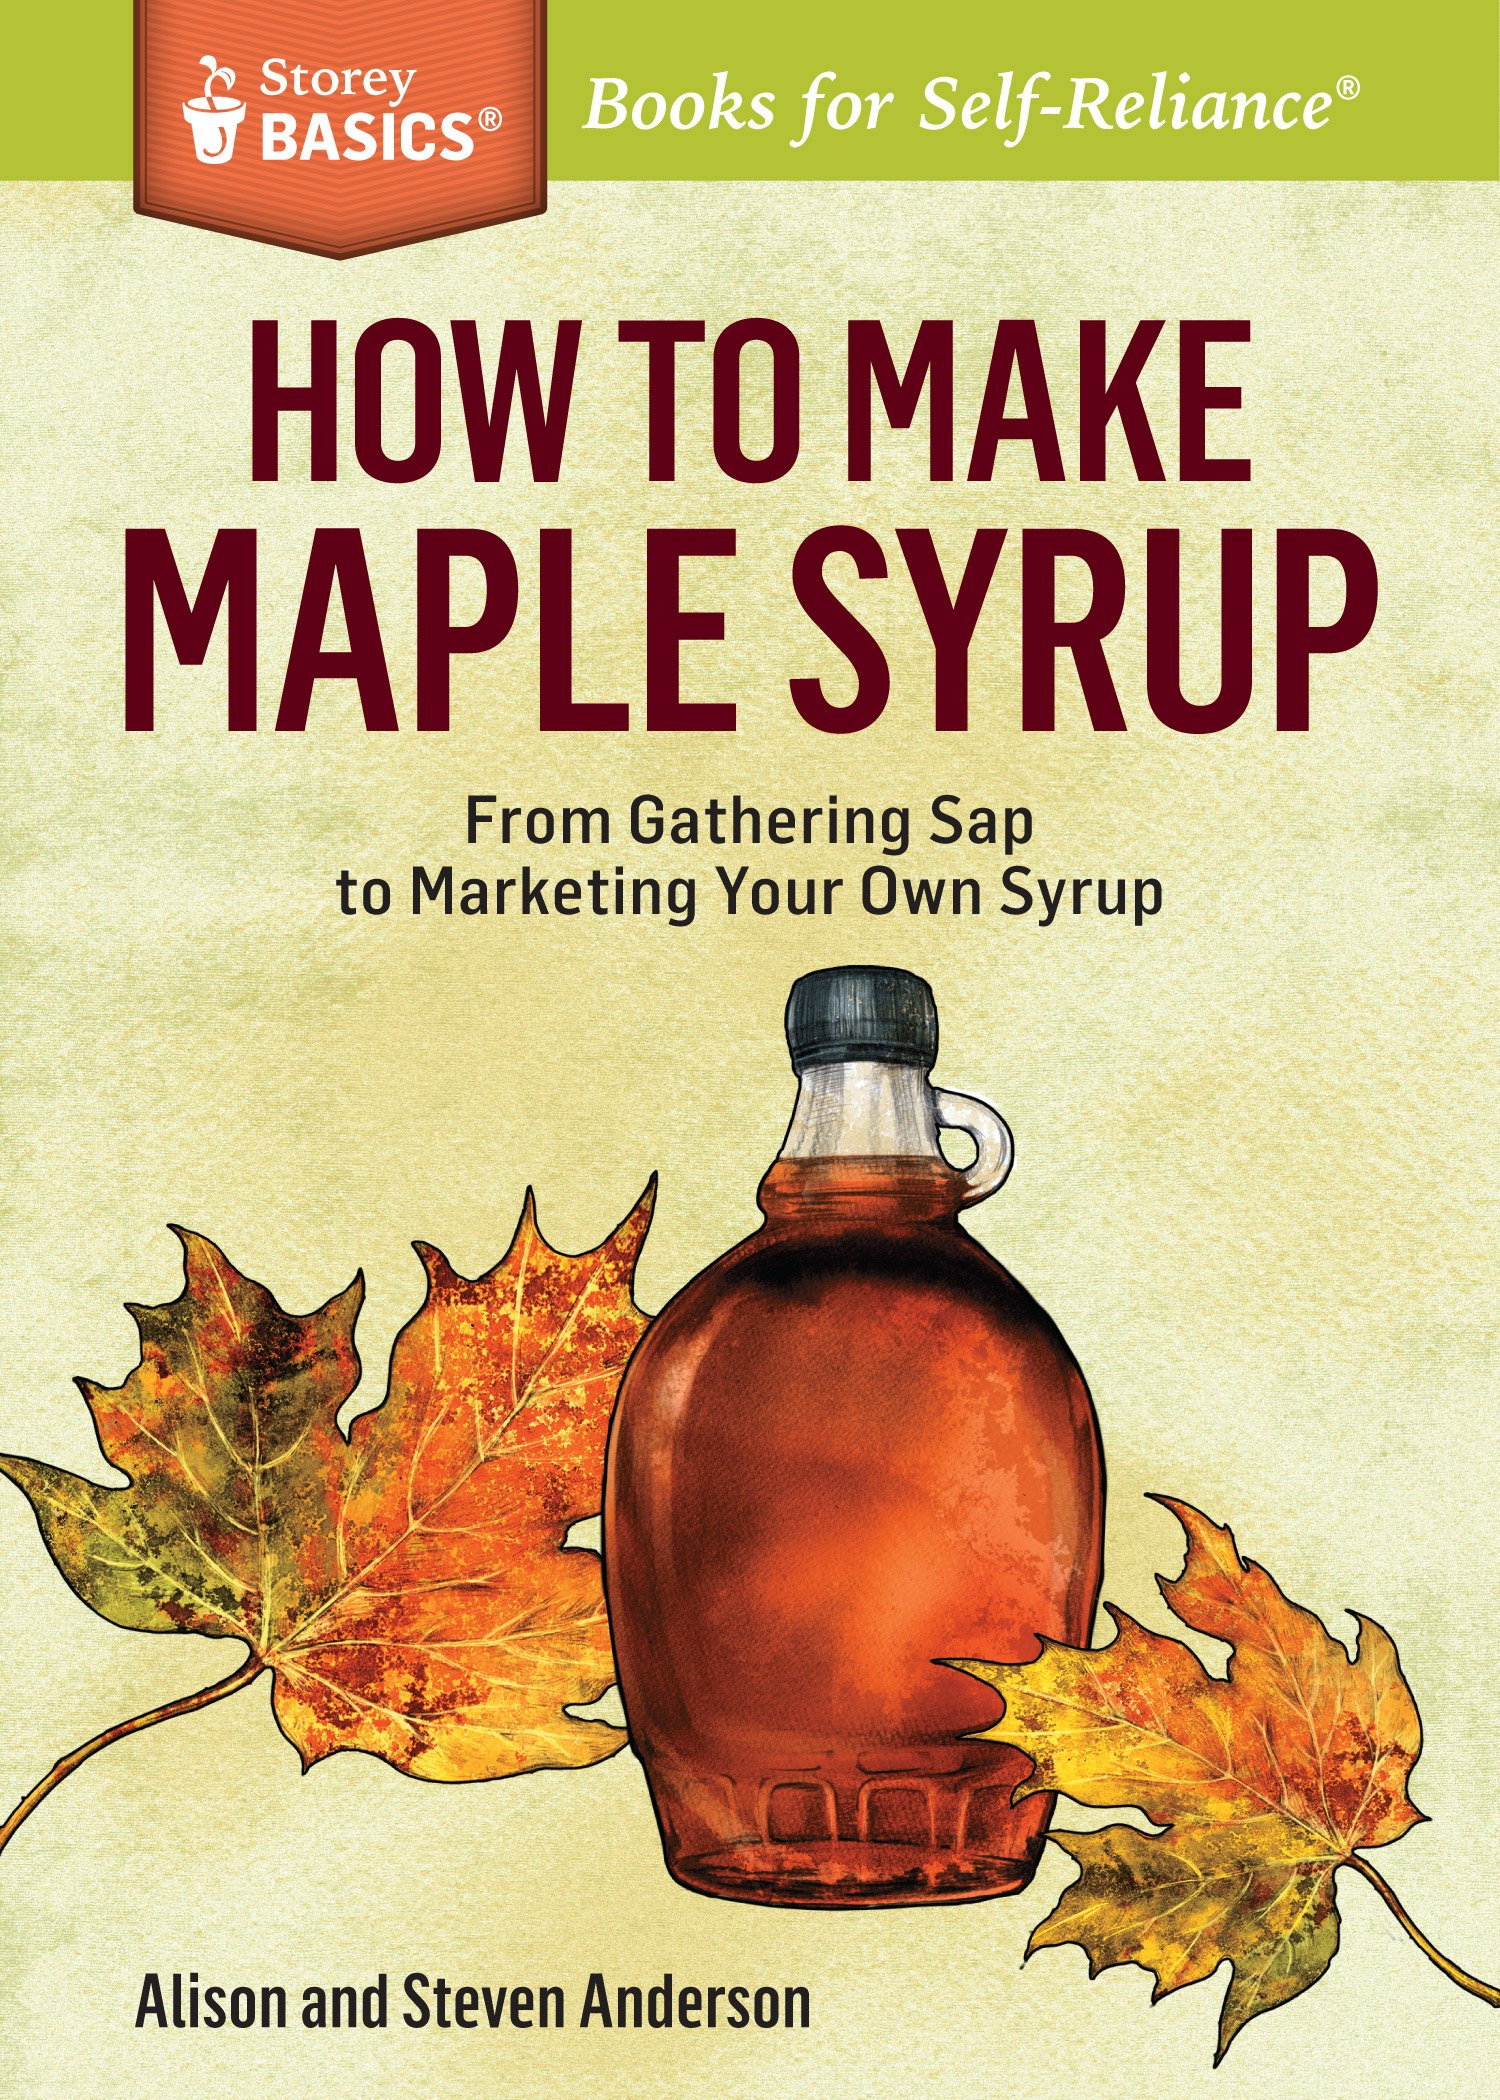 how to make maple syrup from gathering sap to marketing your own